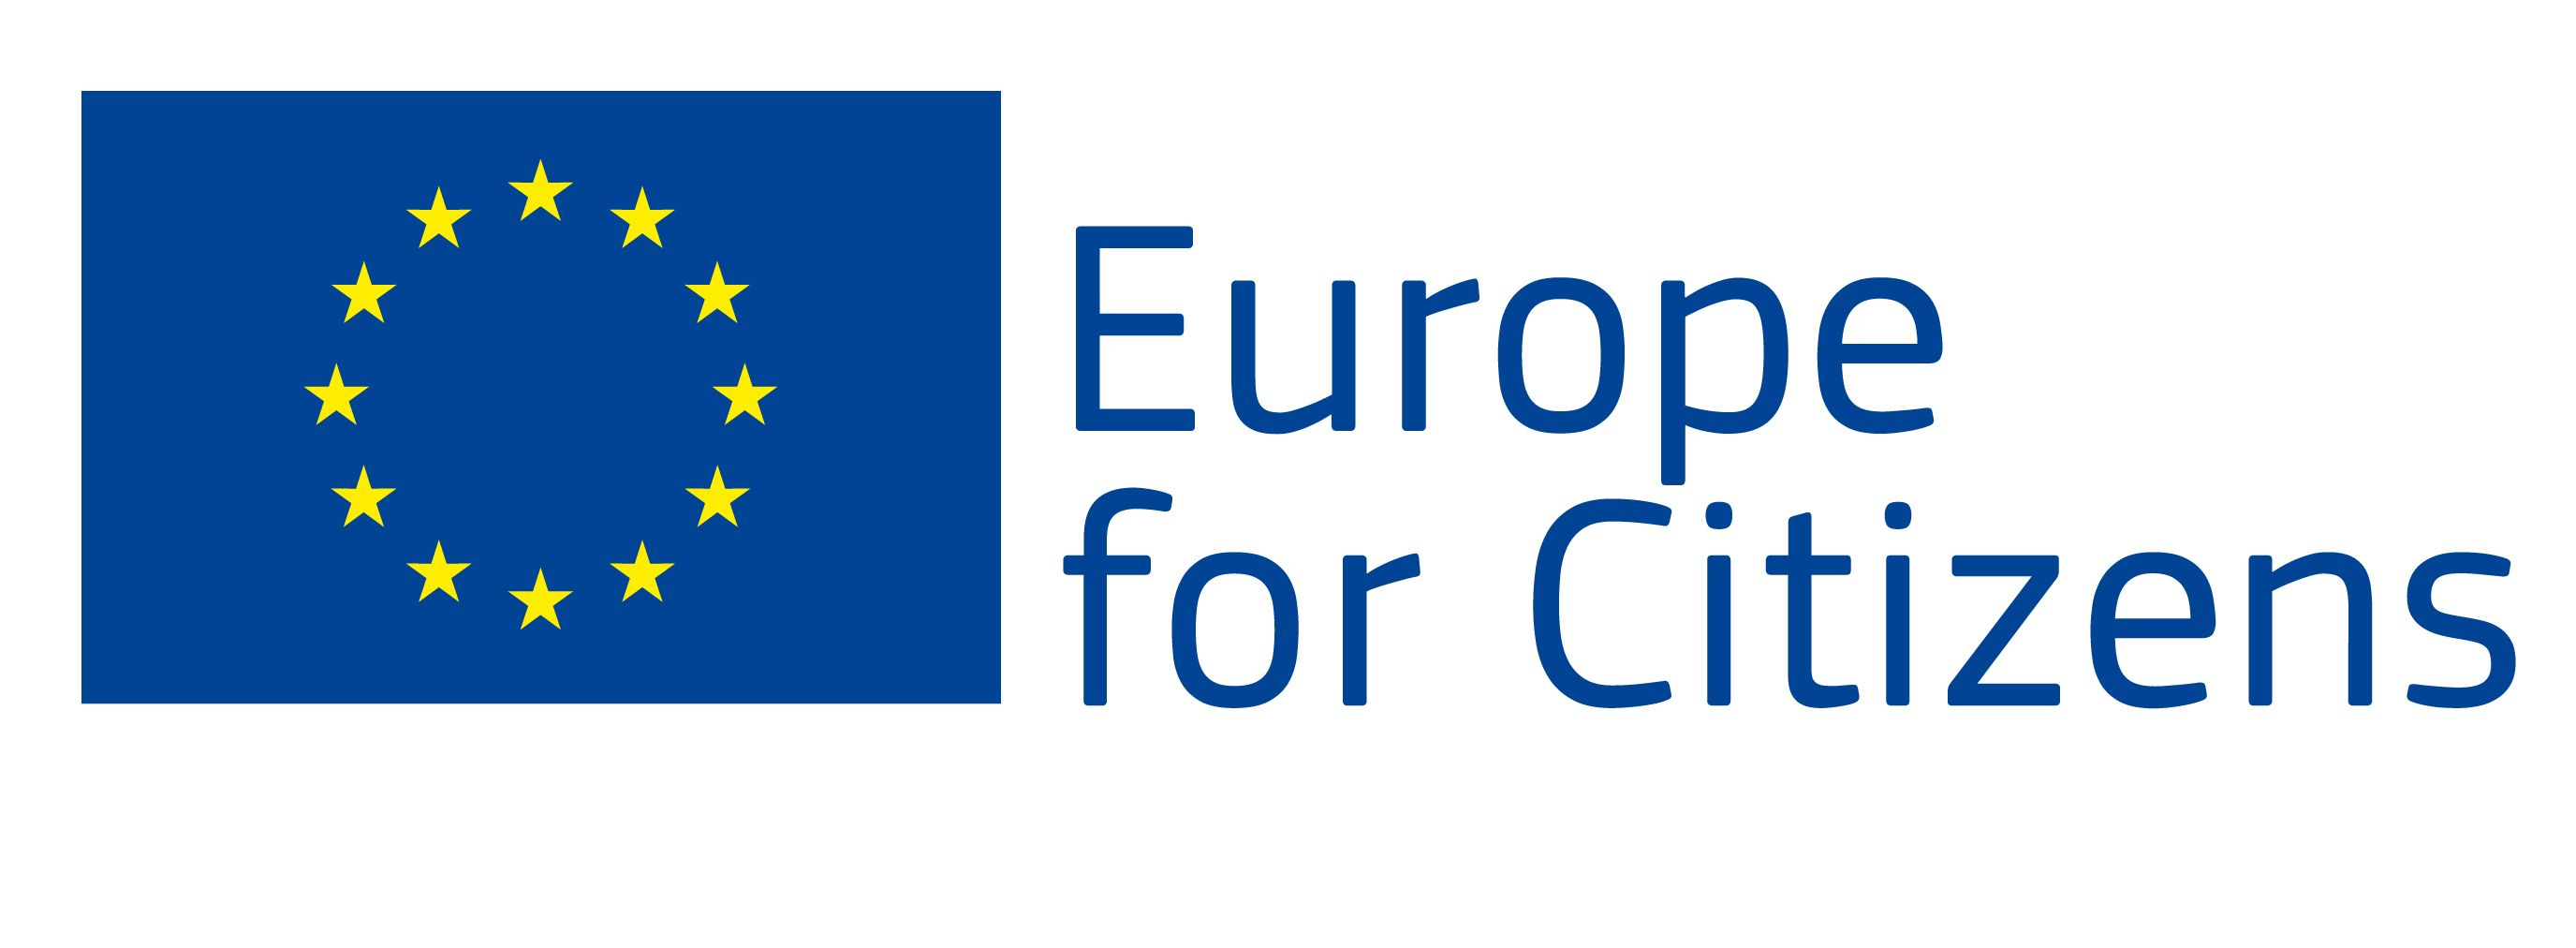 Europe for citizens programme